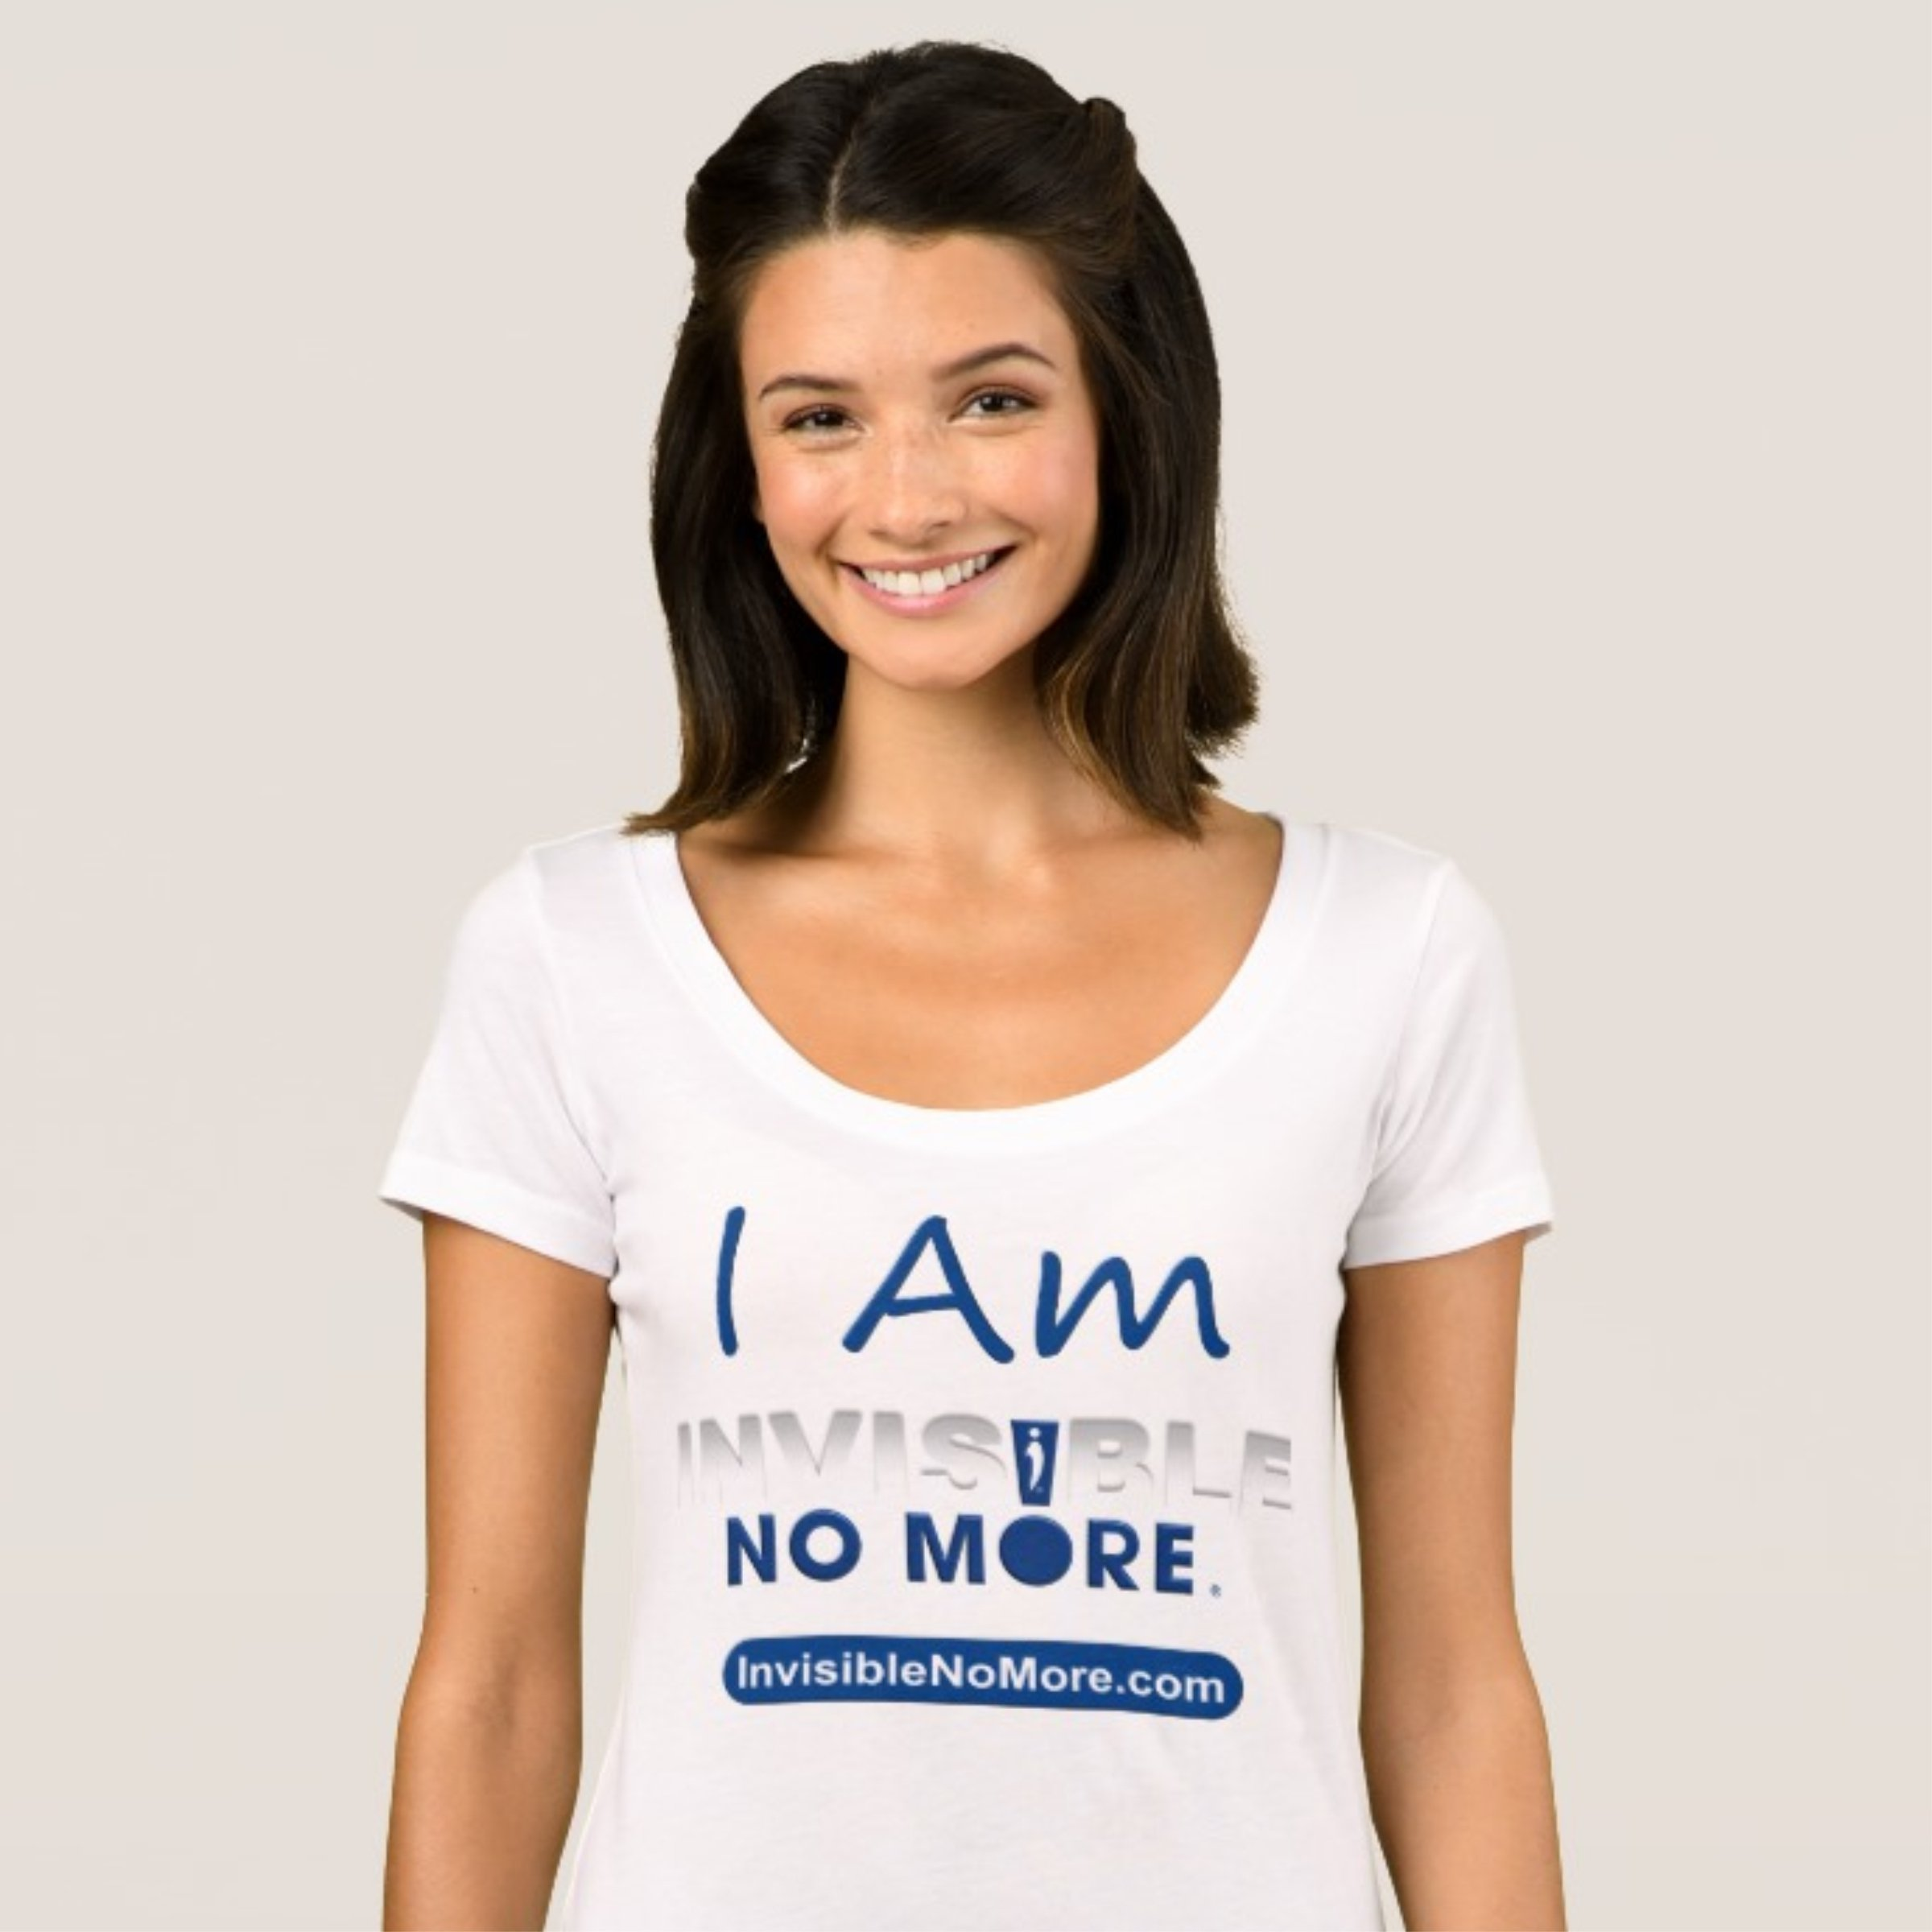 I Am Invisible No More Women's Scoop Neck Shirt